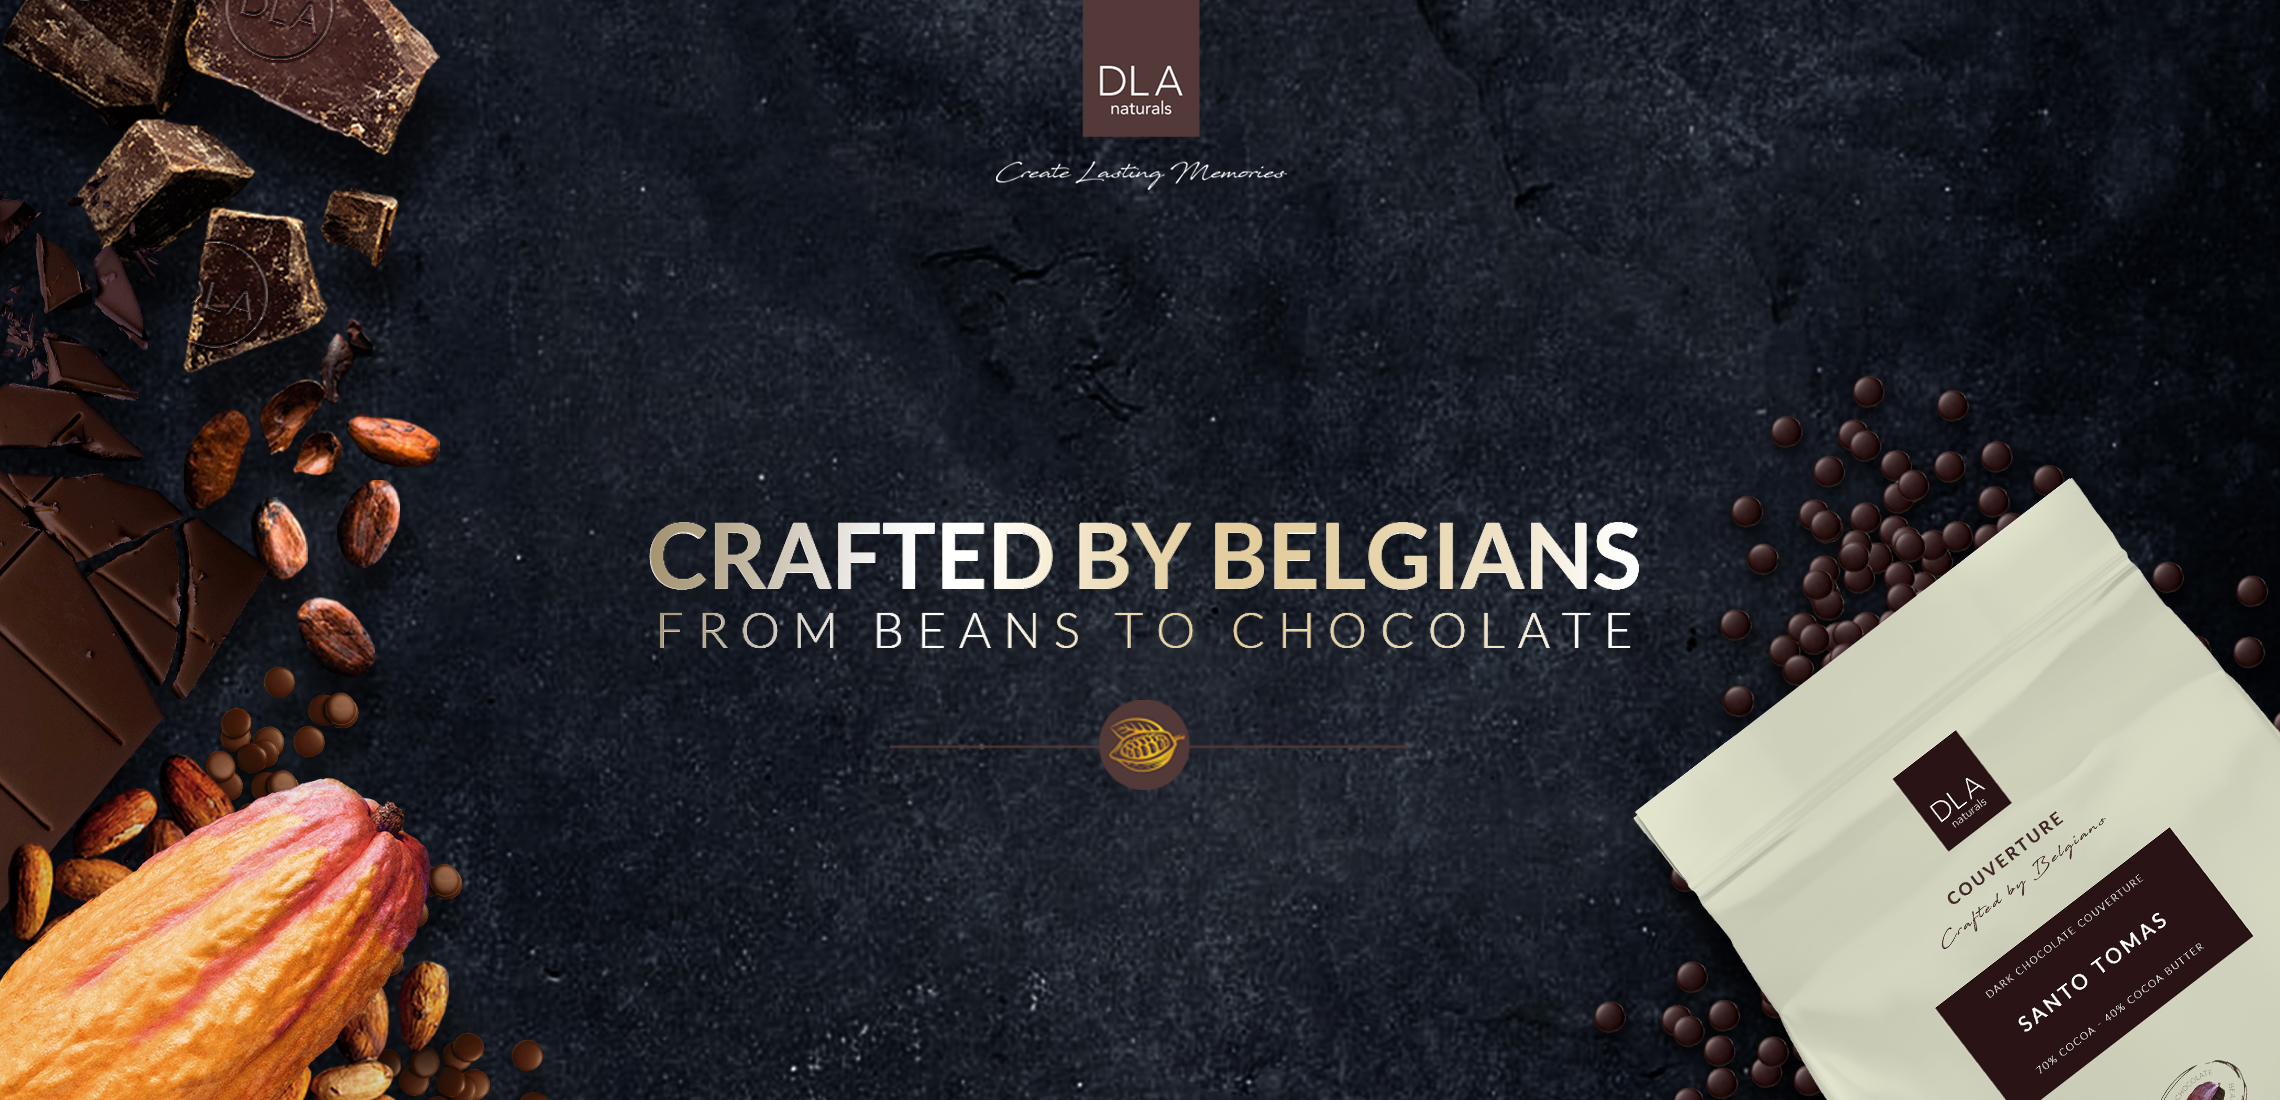 Crafted by Belgians